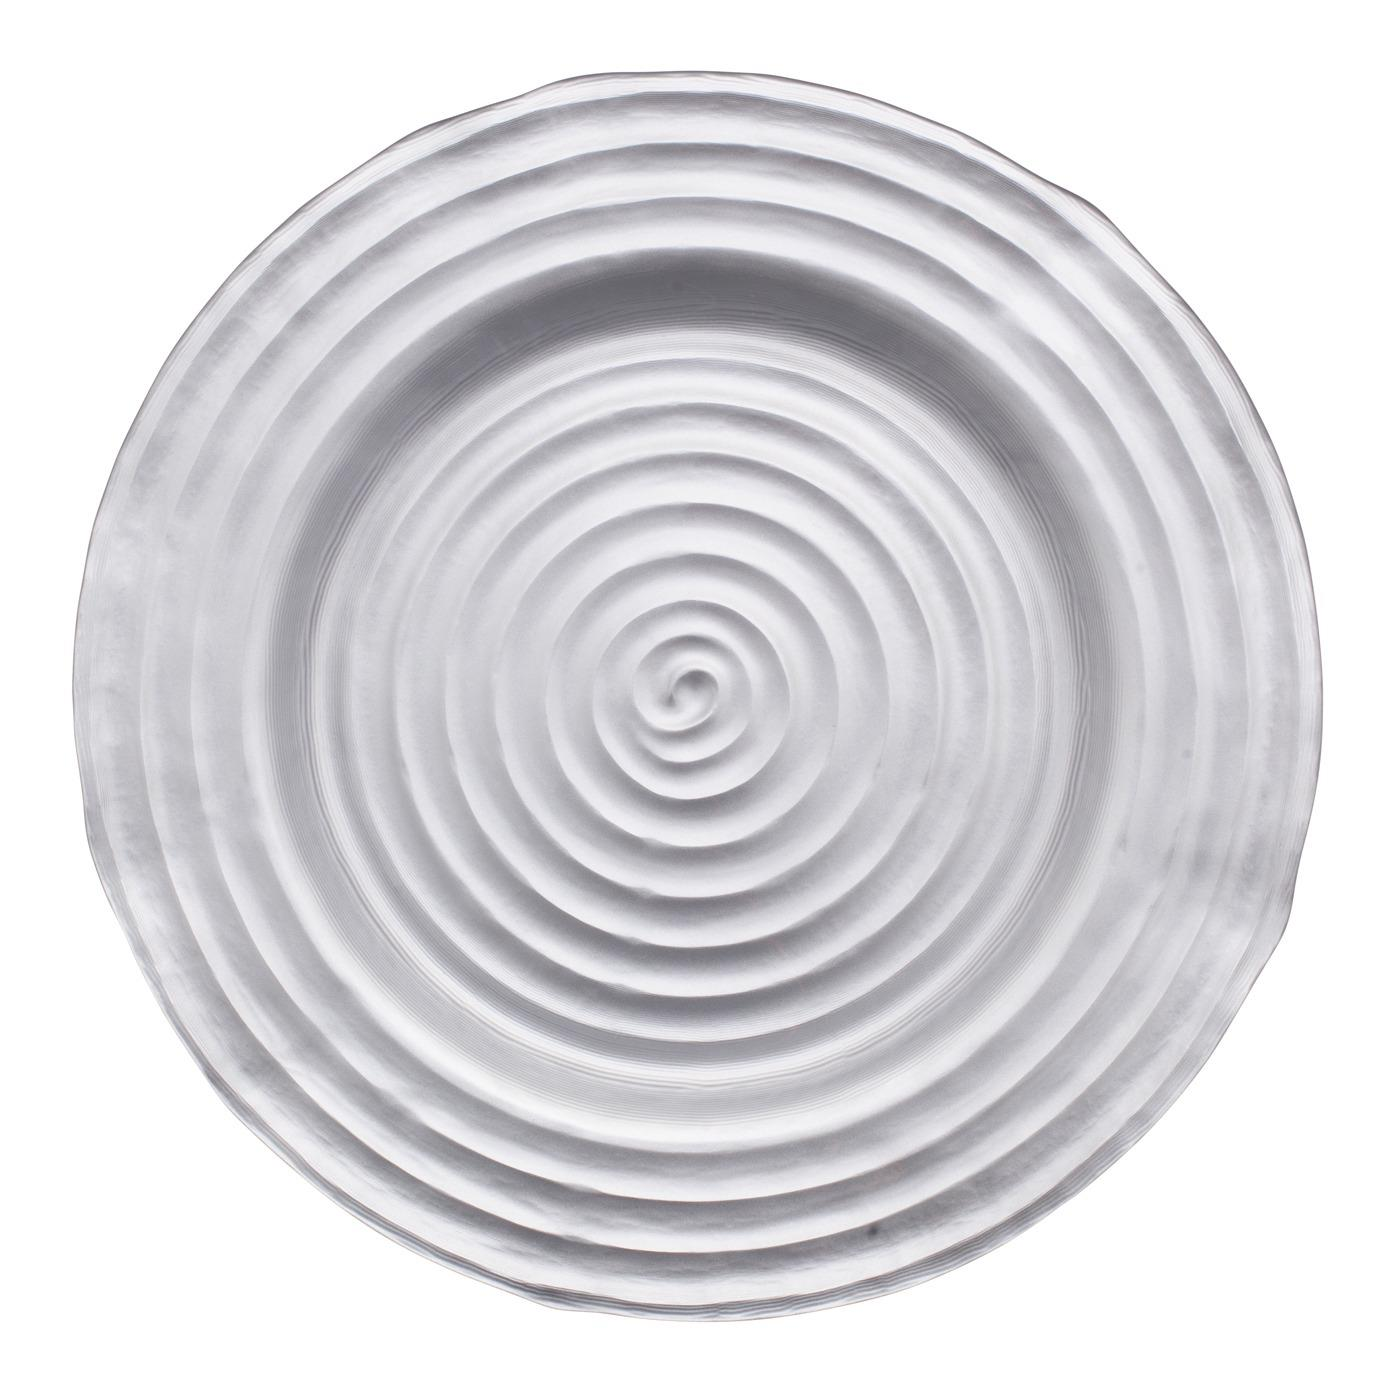 "Swirl Glass Charger 13"" - Silver"